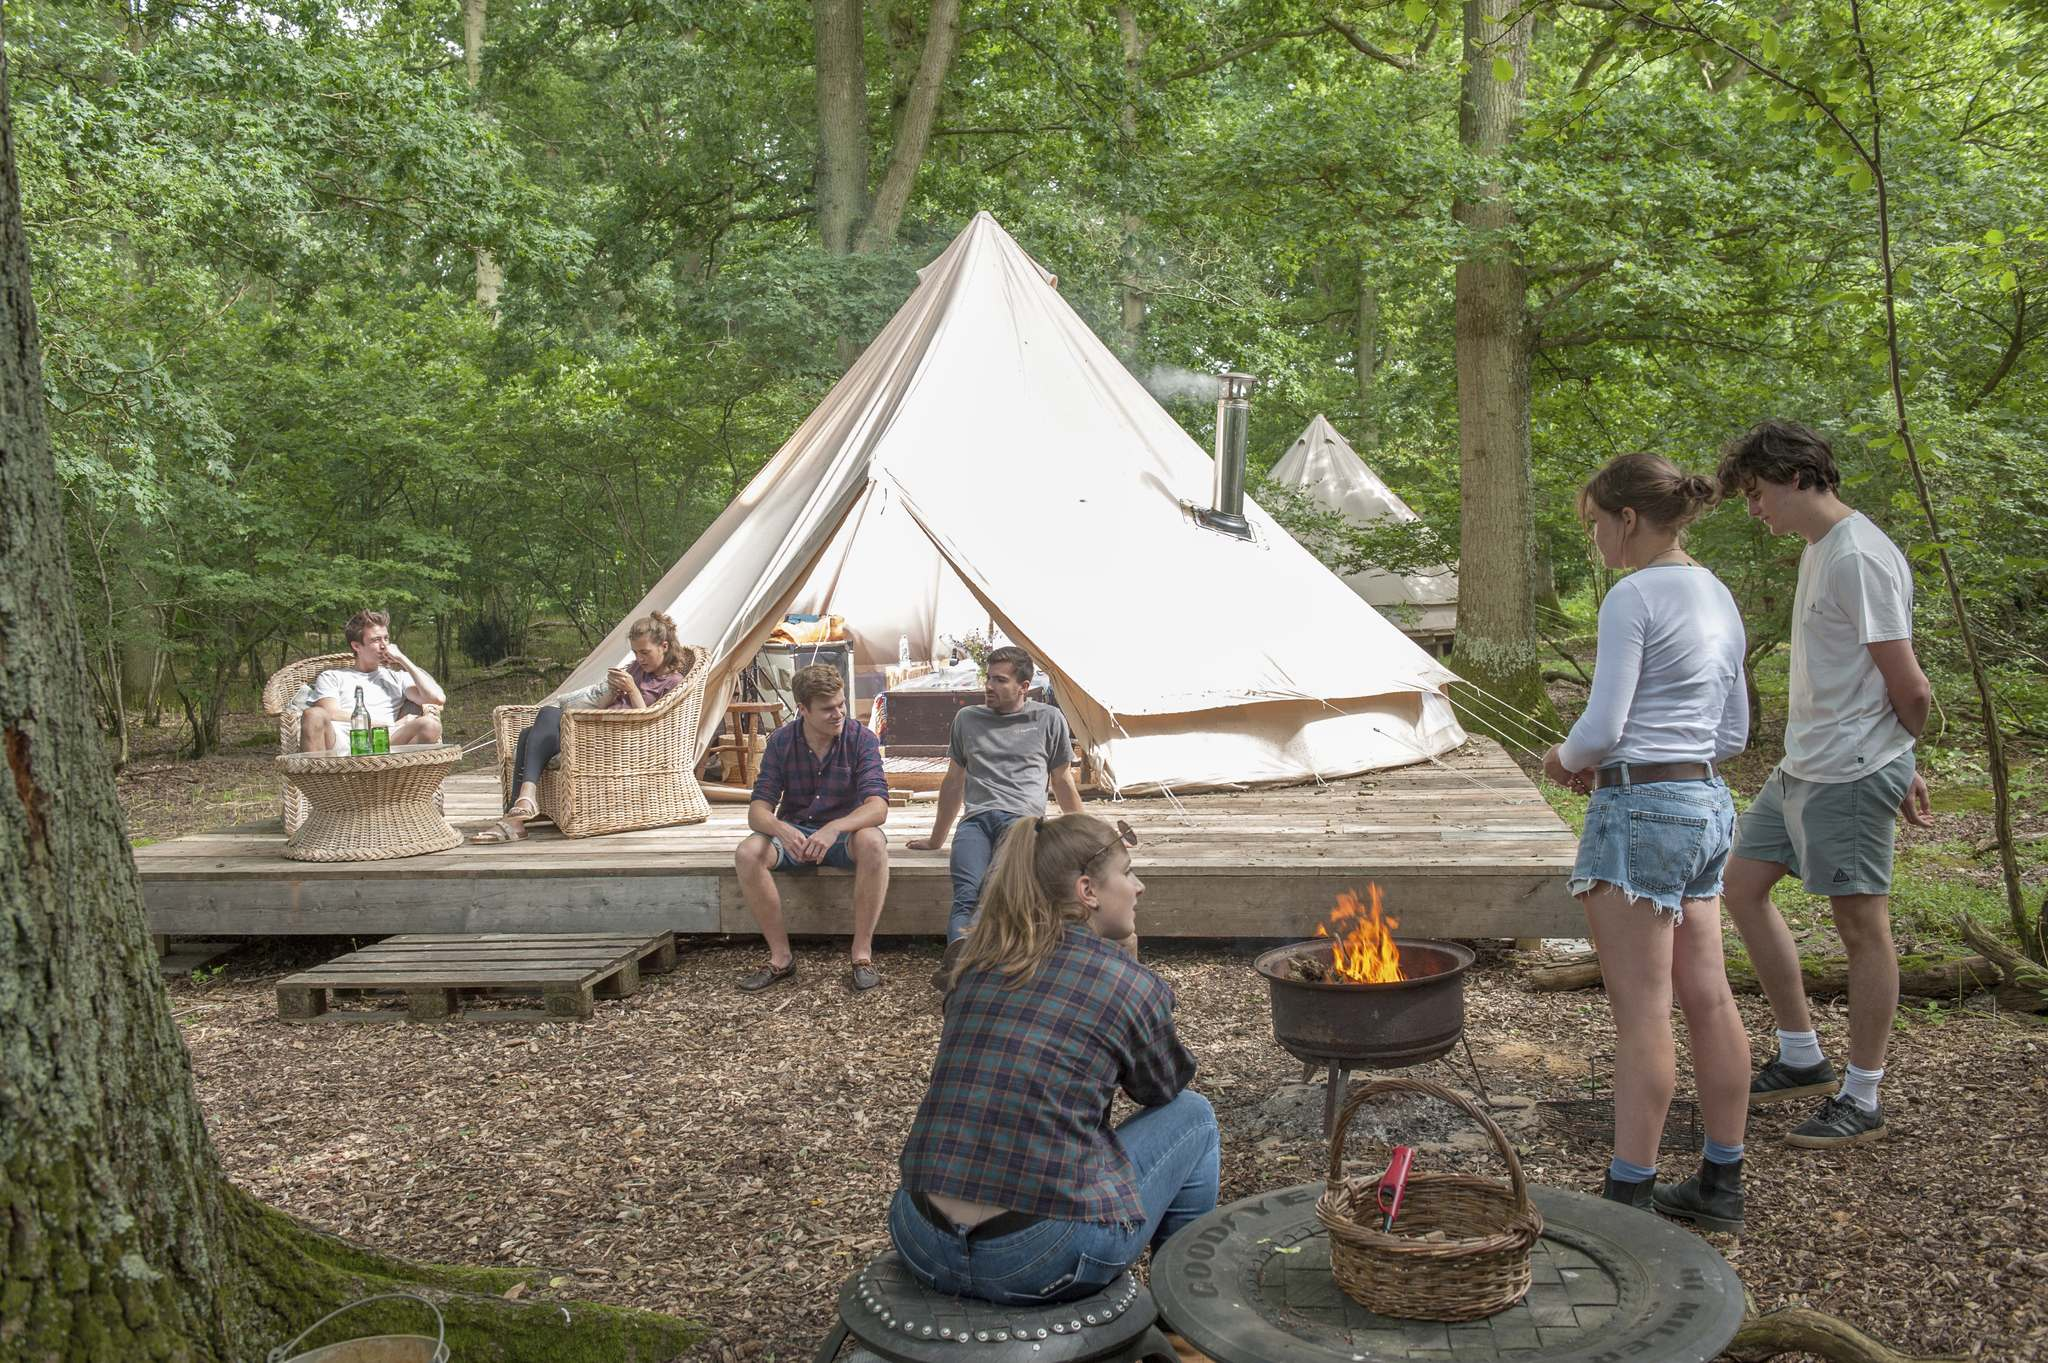 Charlie Burrell</p><p>From Easter to the end of October, visitors to the Knepp Castle estate can &#8216;glamp&rsquo; in rustic huts, yurts, treehouses or bell tents.</p></p>